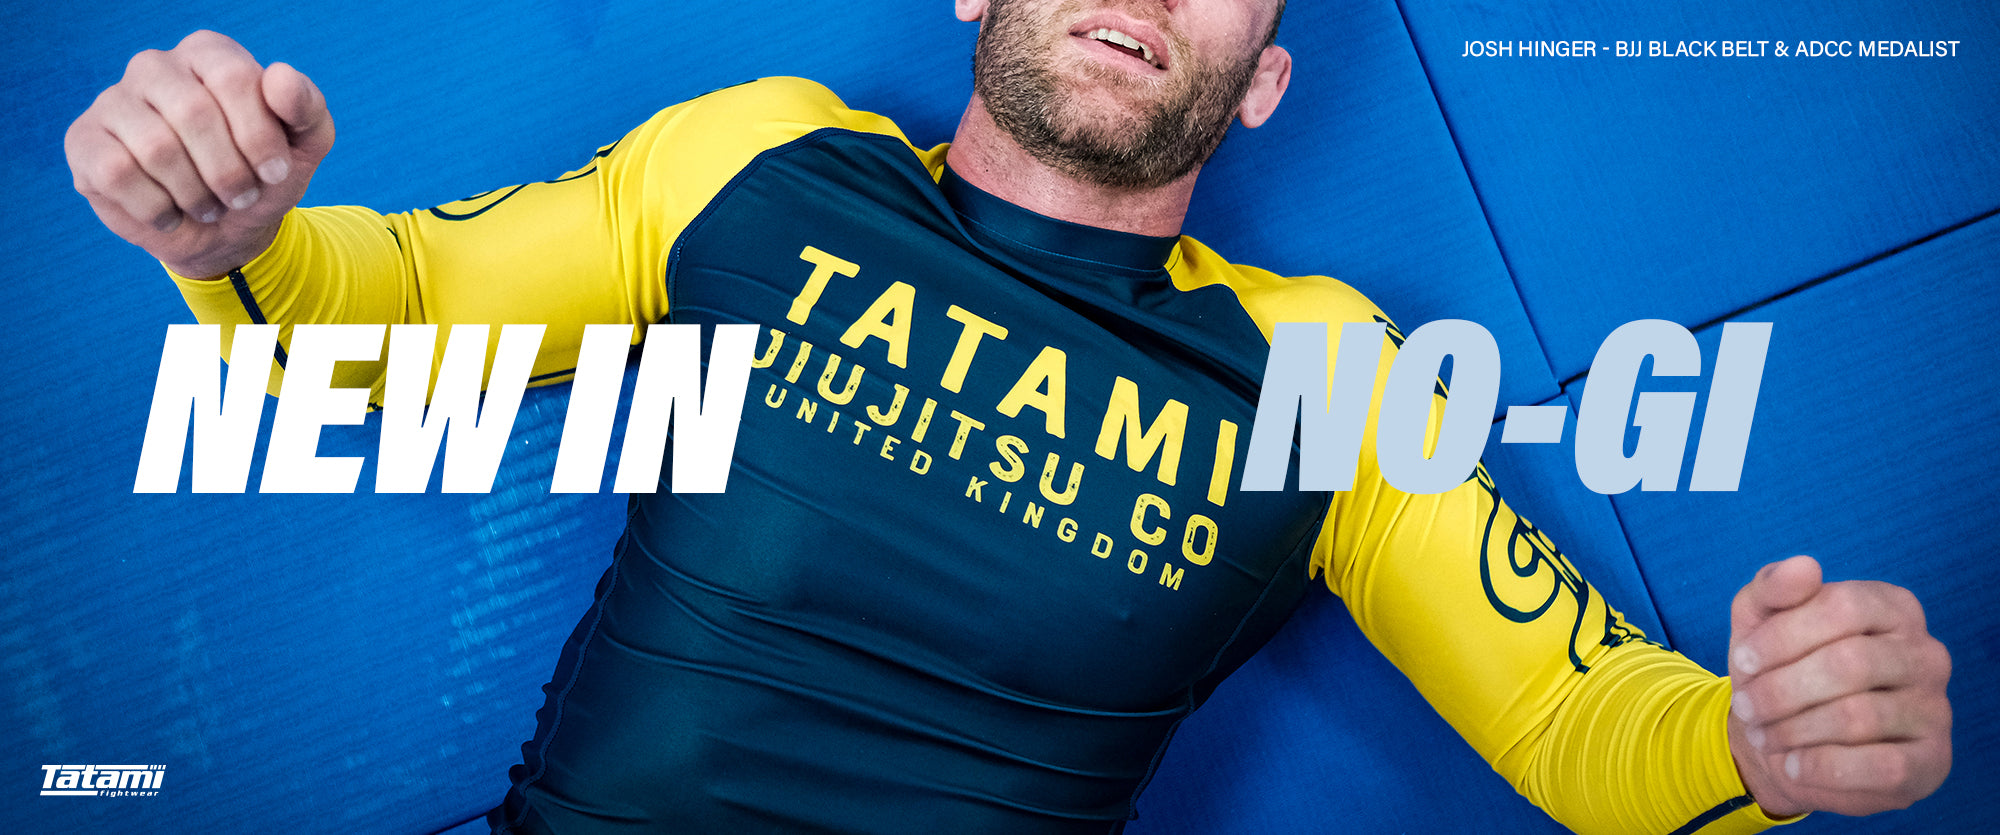 New In Men's No Gi